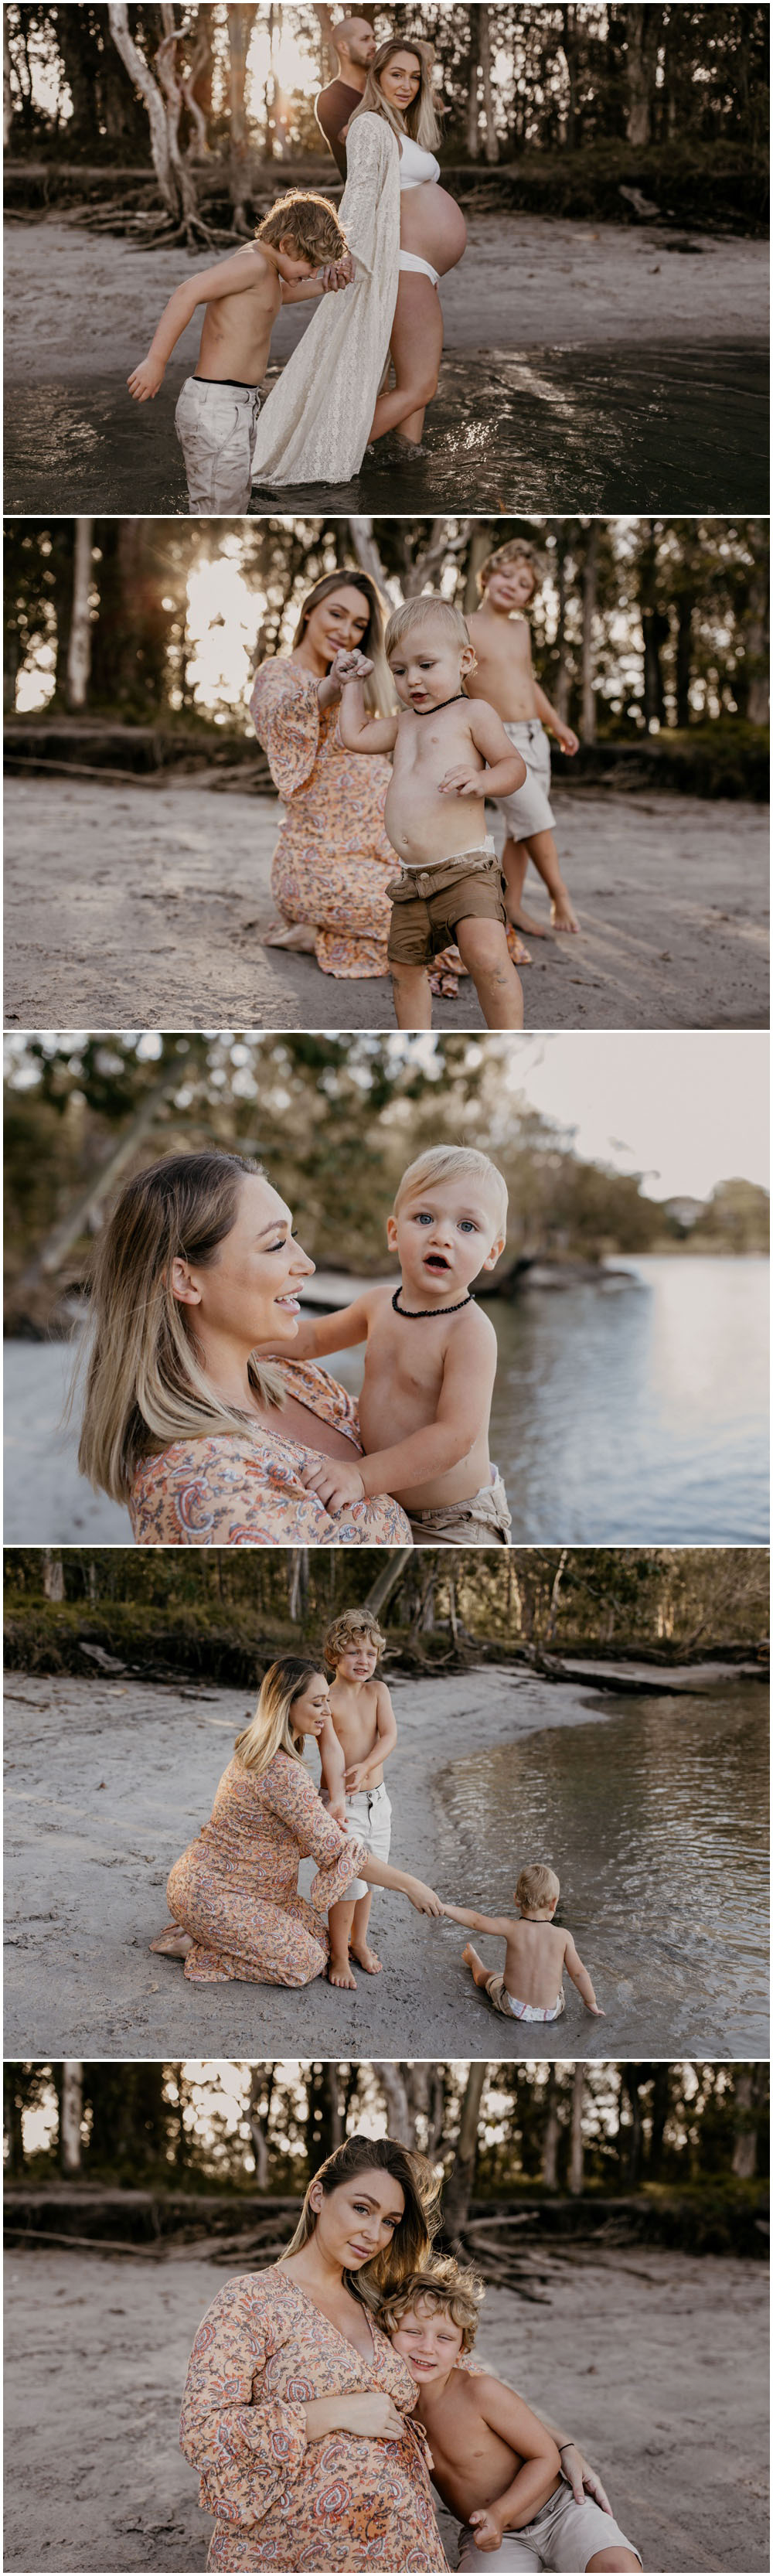 Gold Coast Maternity Photographer Bec Zacher